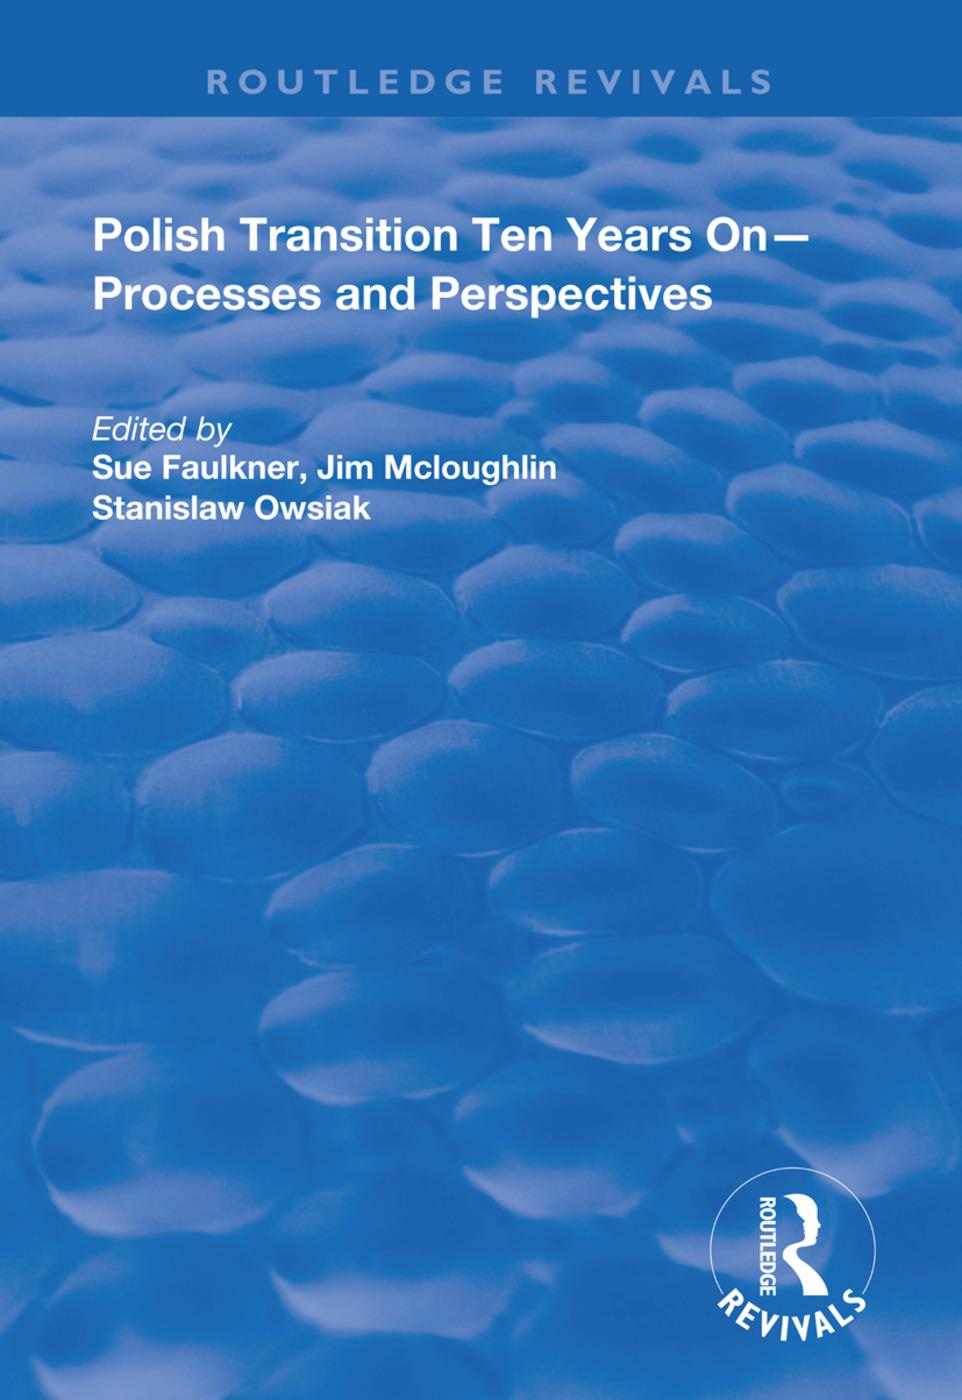 Polish Transition Ten Years On: Processes and Perspectives book cover